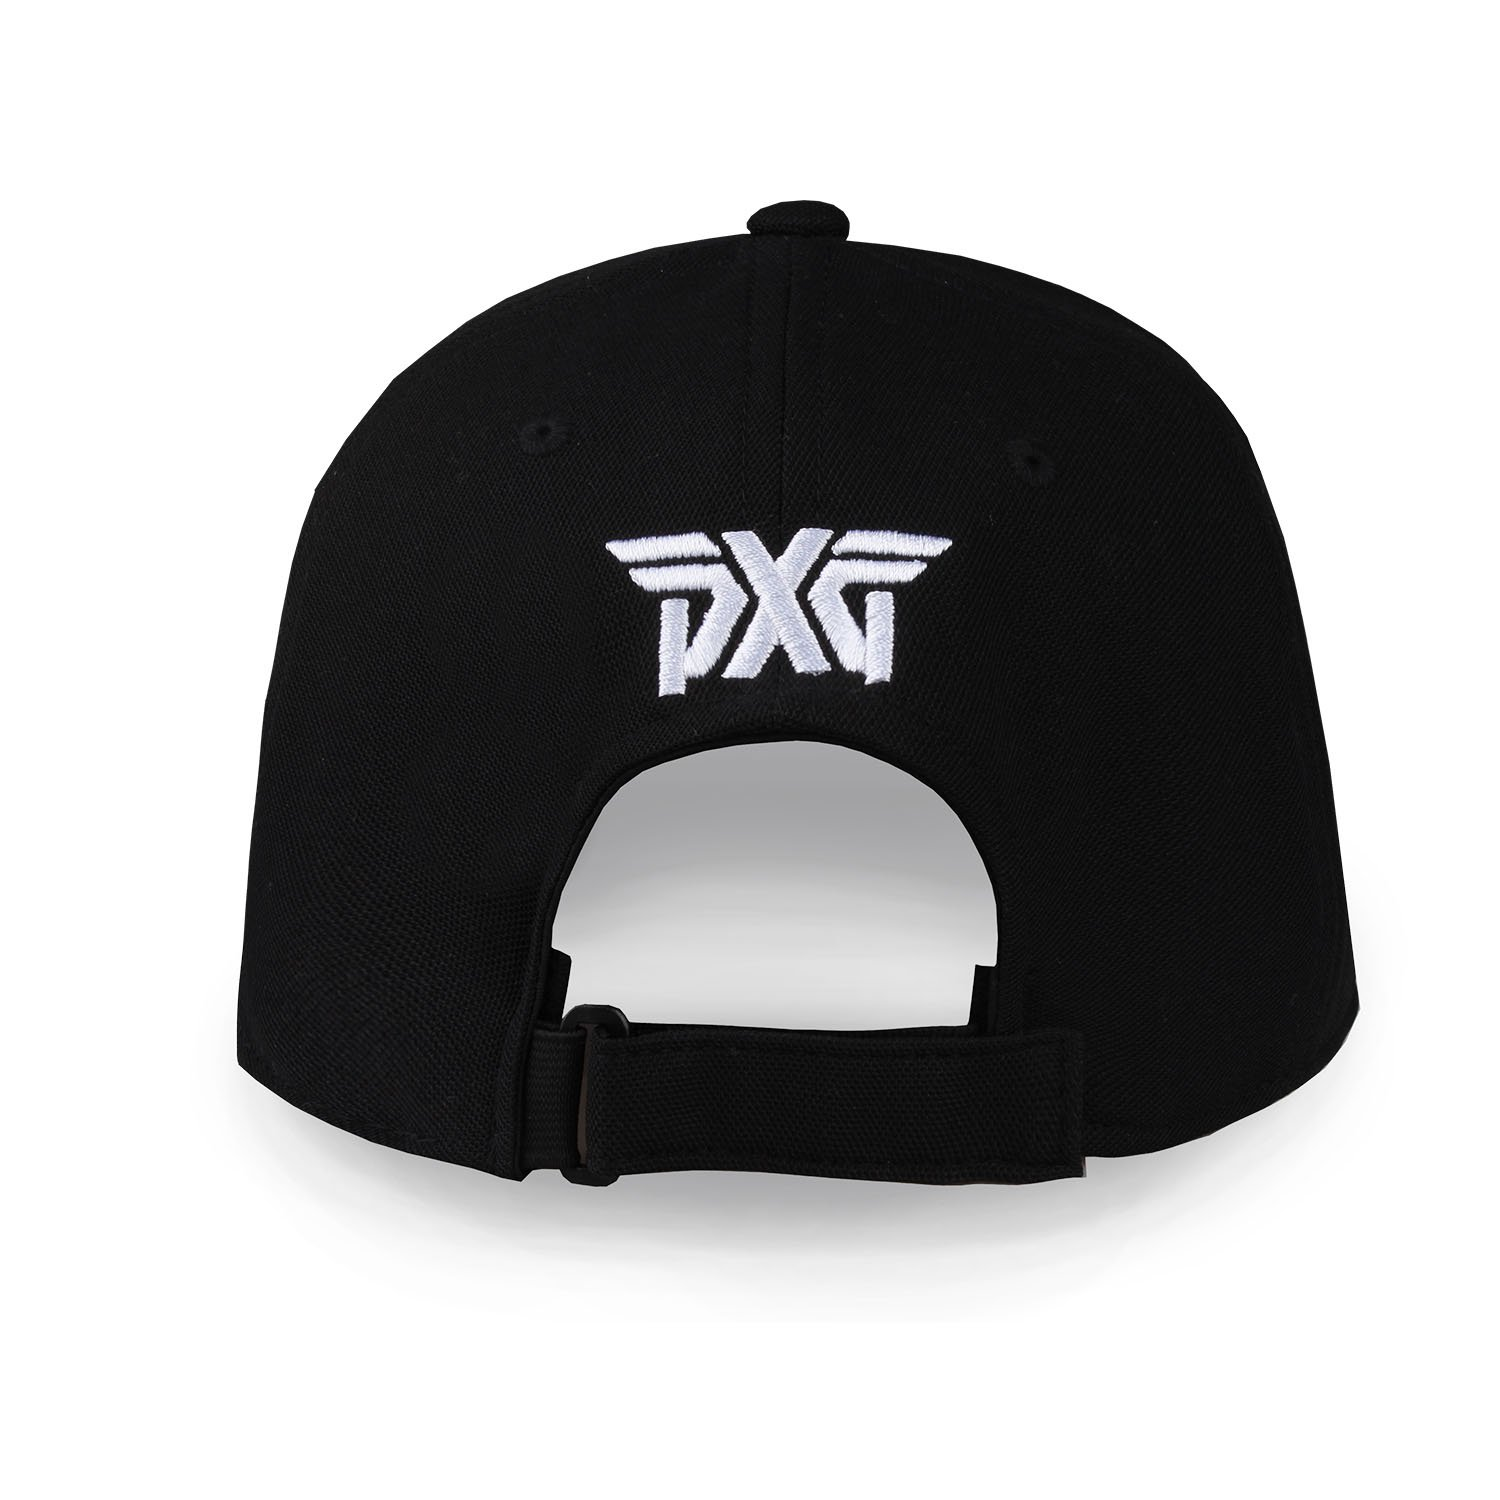 64f83e37db6 PXG Golf Hat (Lifestyle) (Lifestyle Hat